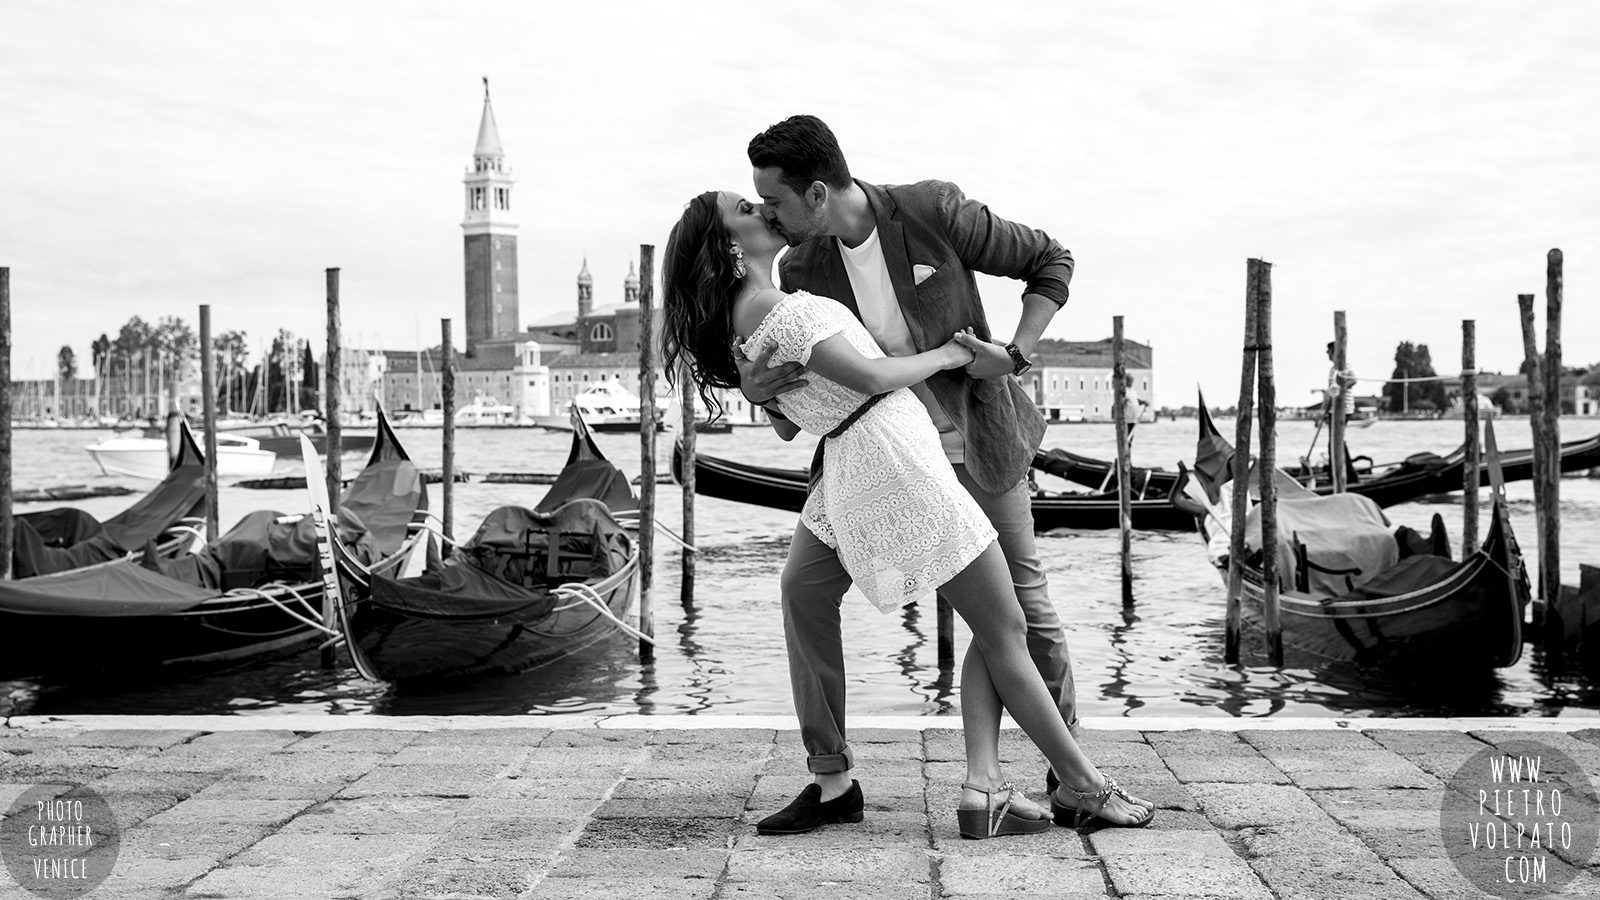 photographer-in-venice-for-couple-pre-wedding-photoshoot-romantic-vacation-tour-pictures-20160524_01